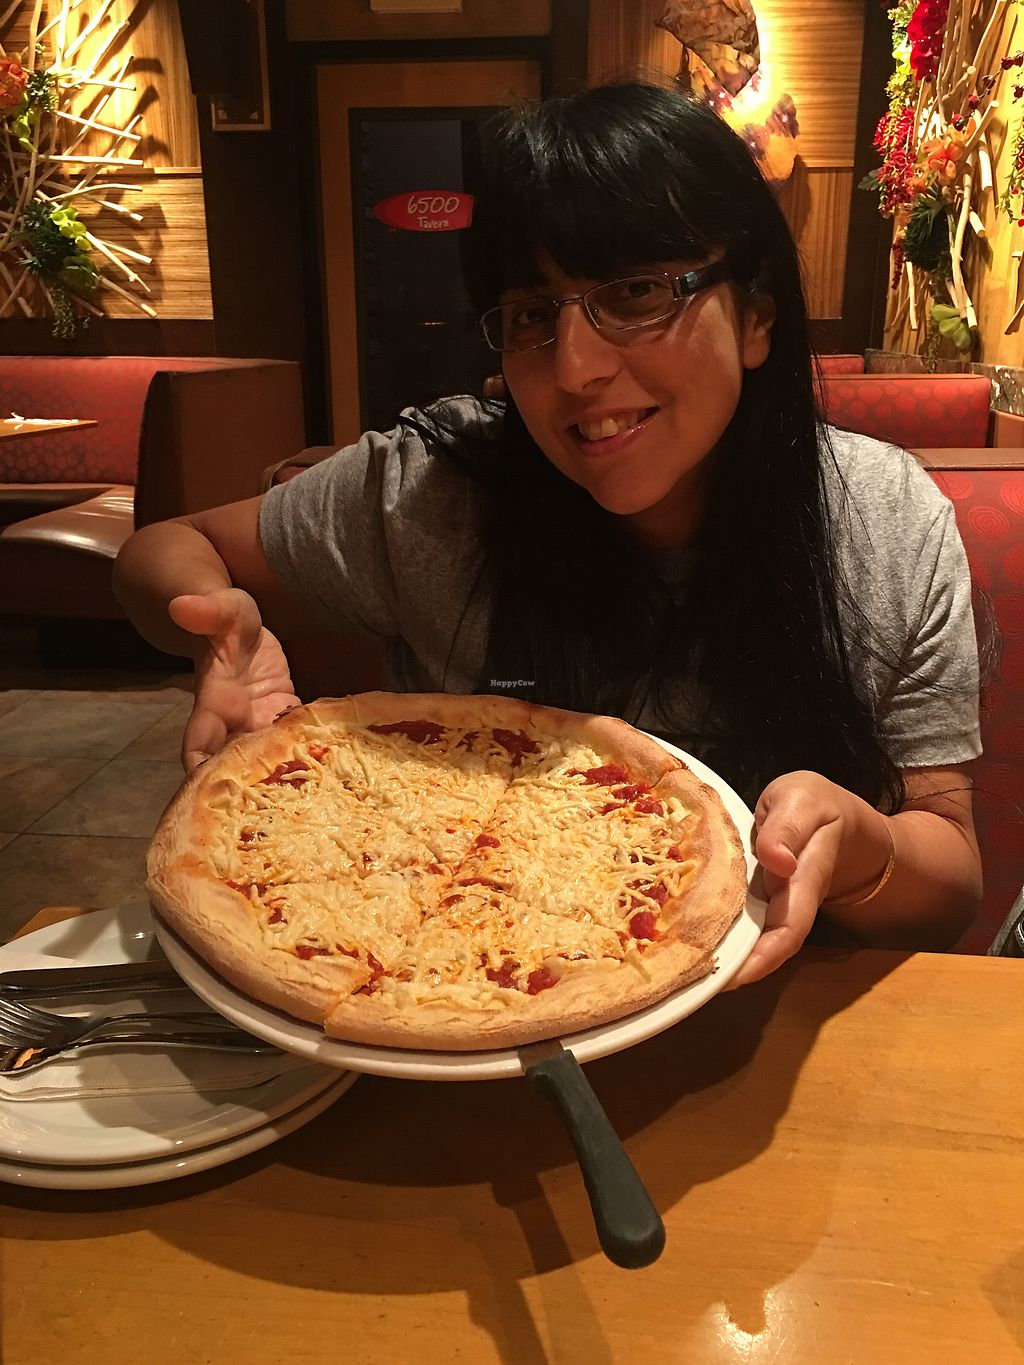 """Photo of Sammy's Woodfire Pizza  by <a href=""""/members/profile/Lailanotte"""">Lailanotte</a> <br/>Vegan cheese pizza <br/> September 22, 2017  - <a href='/contact/abuse/image/57316/307007'>Report</a>"""